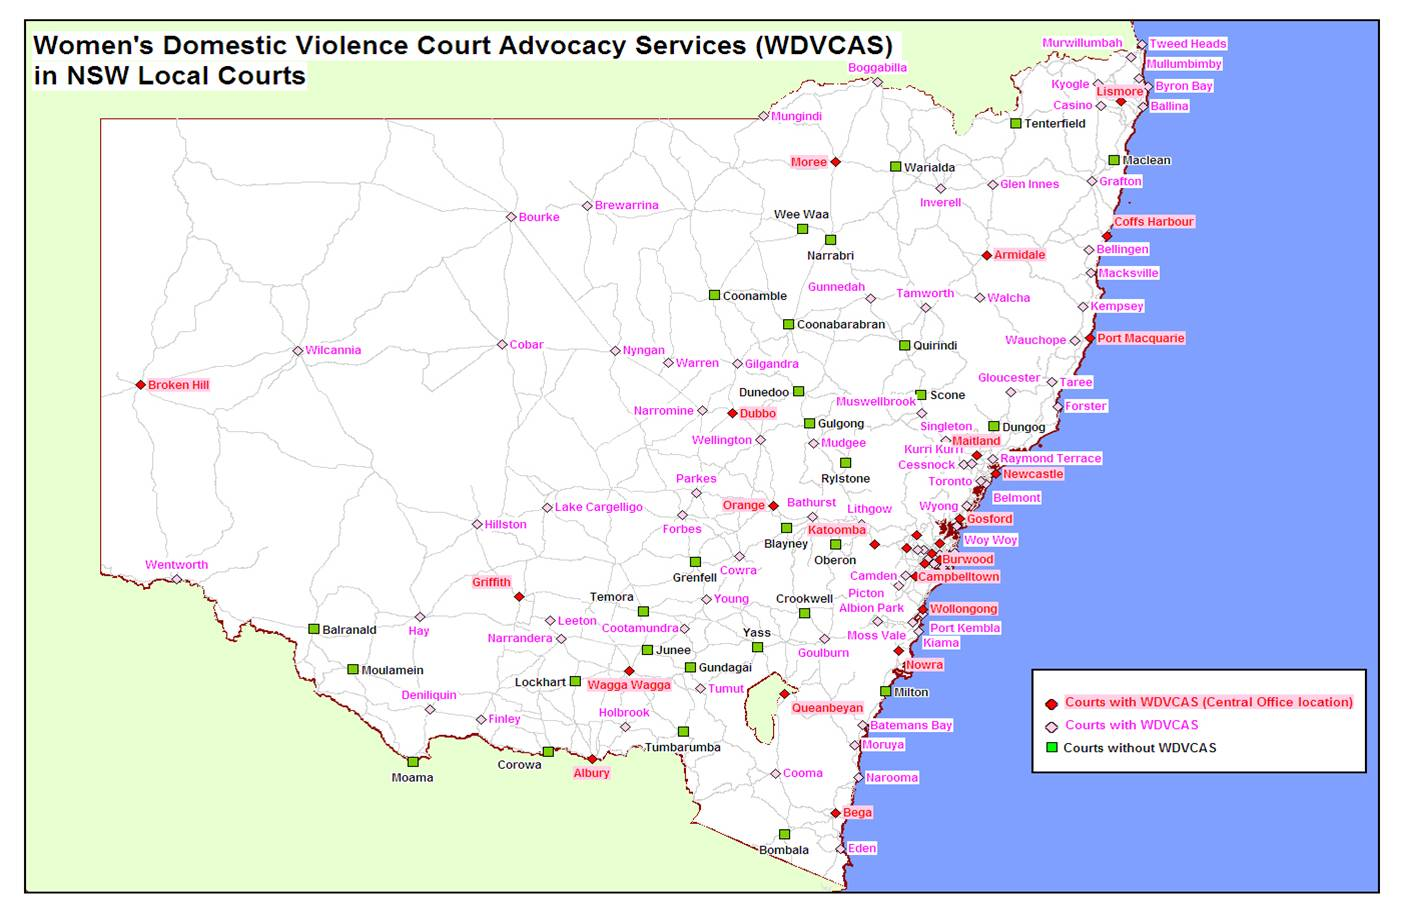 Map of WDVCAS services Legal Aid NSW